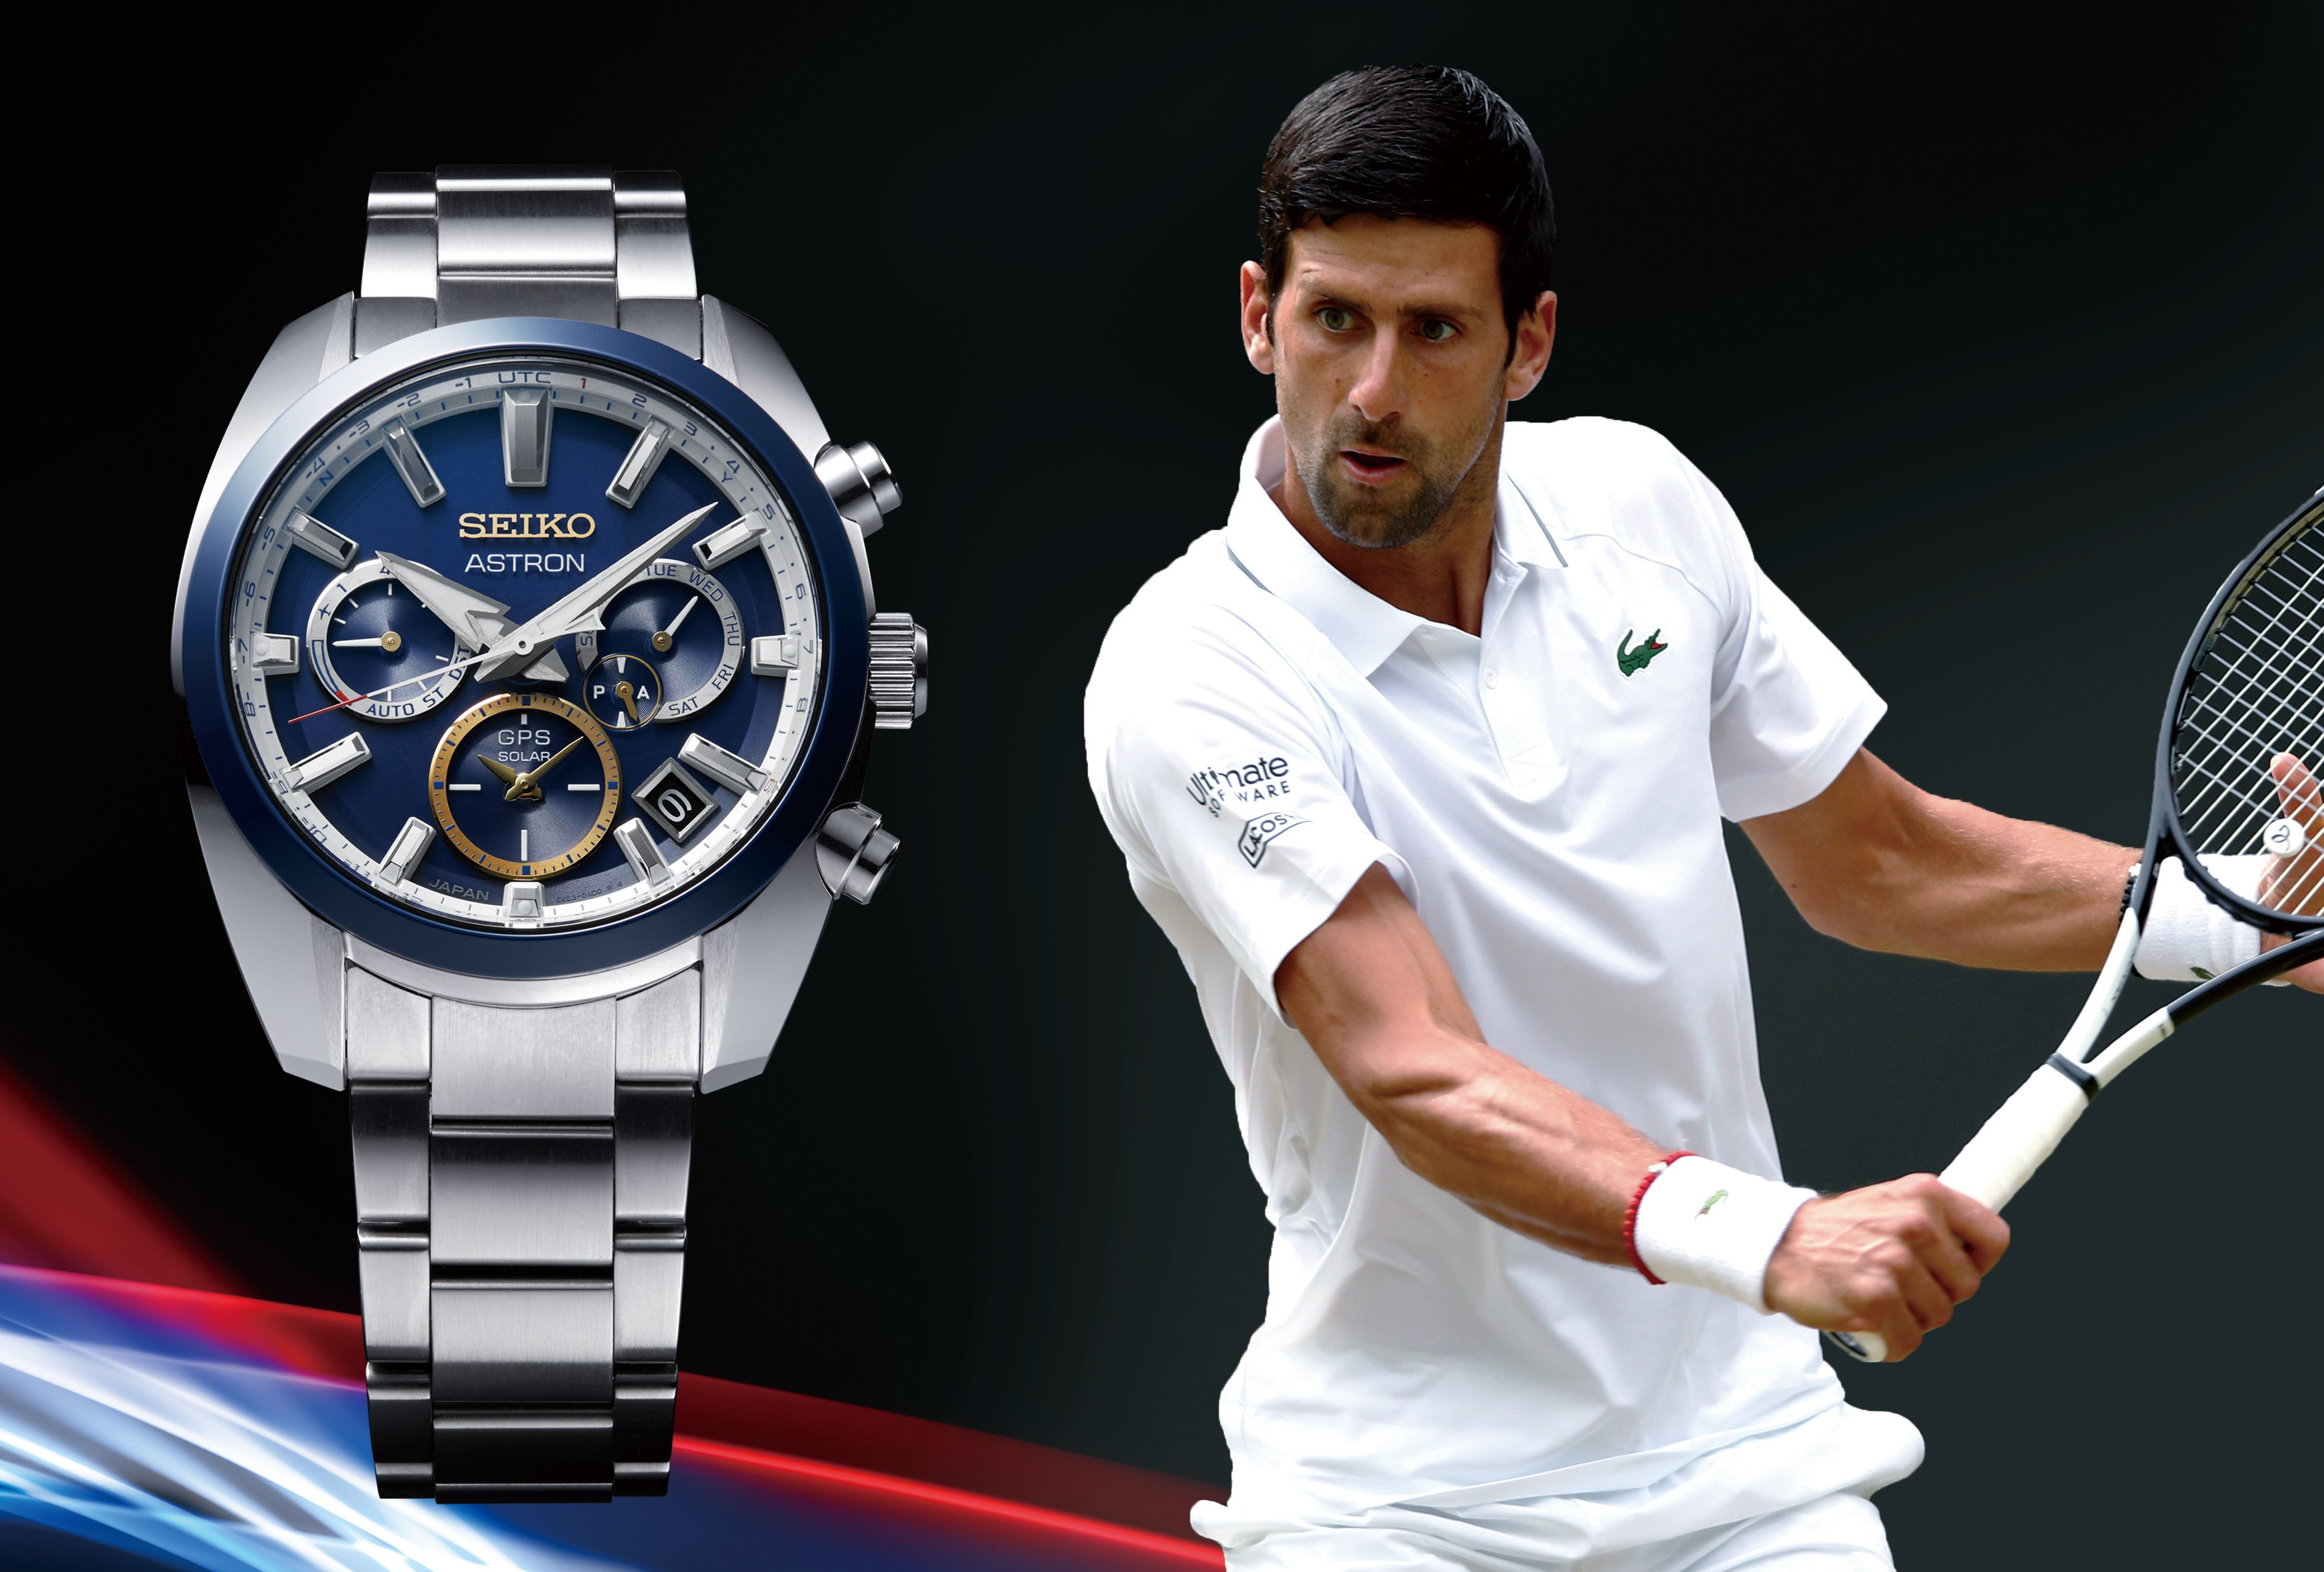 A New Astron Gps Solar Watch Flies The Flag For Novak Djokovic News Seiko Watch Corporation